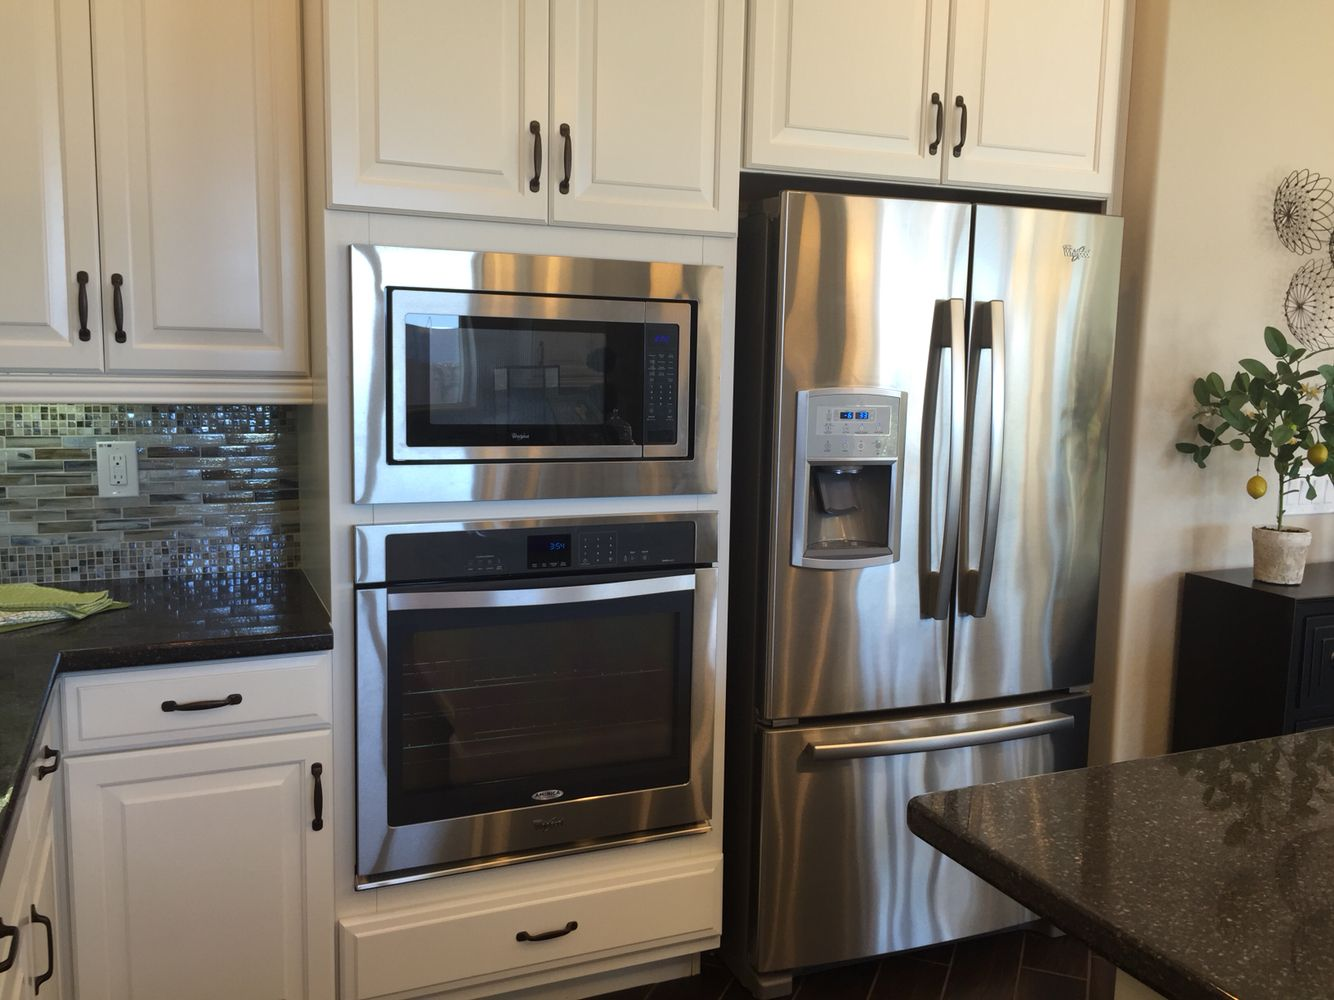 kitchen design refrigerator next to wall oven new homes kitchen decor white cabinets stainless steel 908